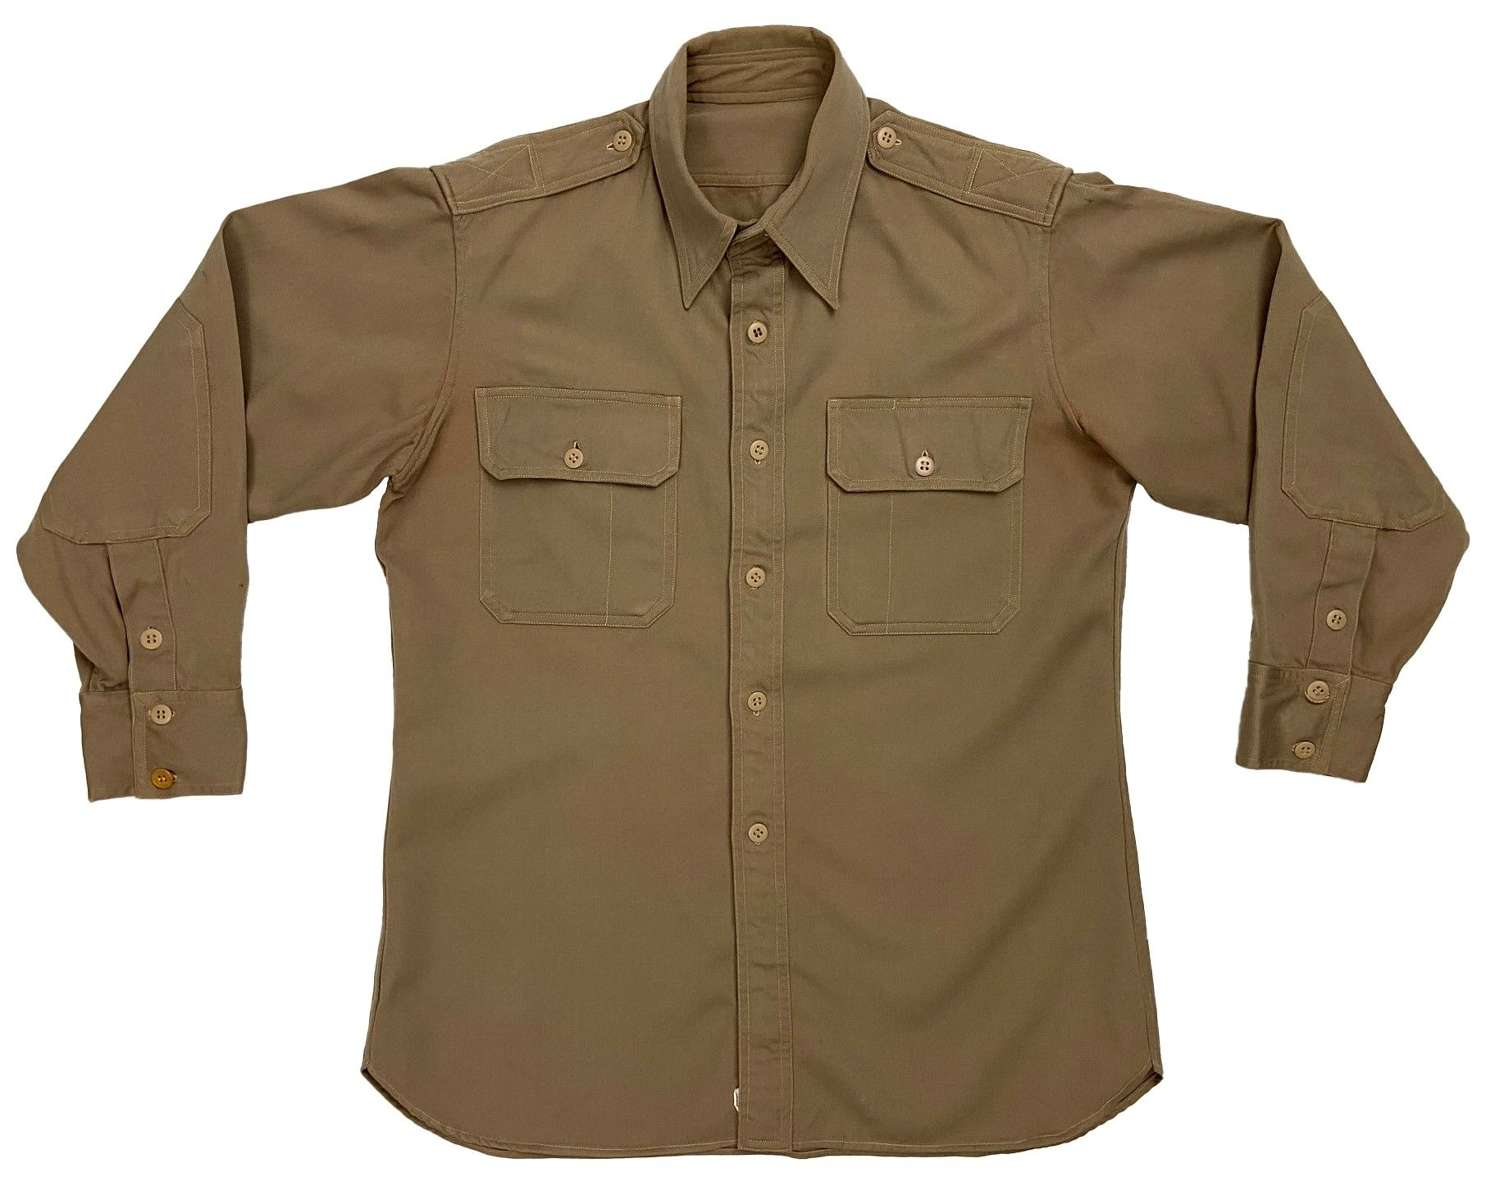 Original US Army Regulation Tan Shirt